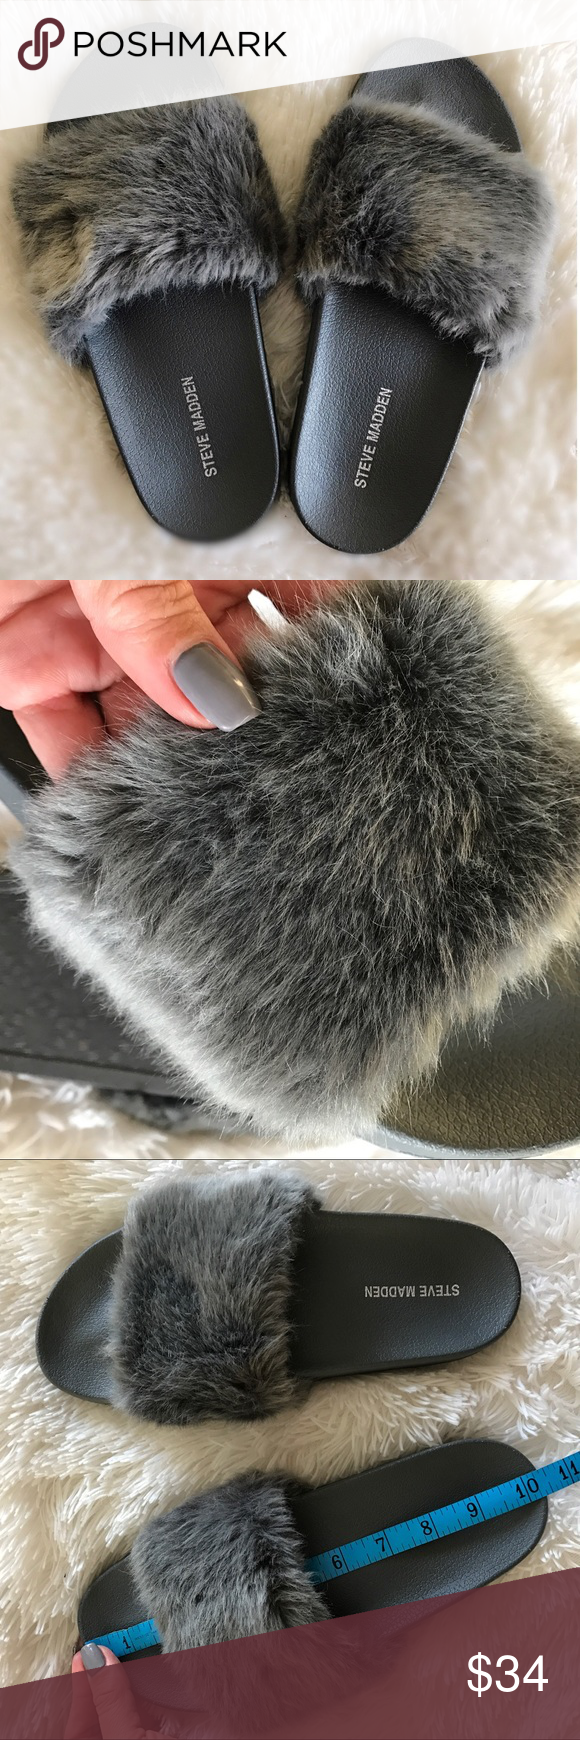 STEVE MADDEN  FUZZY SLIDES SIZE 9 STEVE MADDEN SOFTEY SLIDE SIZE 9 women. The footbed is true to size. The fuzzy strap would accommodate a narrow foot best (it seemed tighter to me than most my slides, which is why I am selling). NO FLAWS, Never worn outside the house. And only worn briefly  Super cozy! I LOVE ALL MY FUZZY SLIDES! it's my summertime ugg!   Ships same or next day. Smoke free home.  BUNDLE TO SAVE. BUYING ON POSH = NO SALES TAX!  Steve Madden Shoes